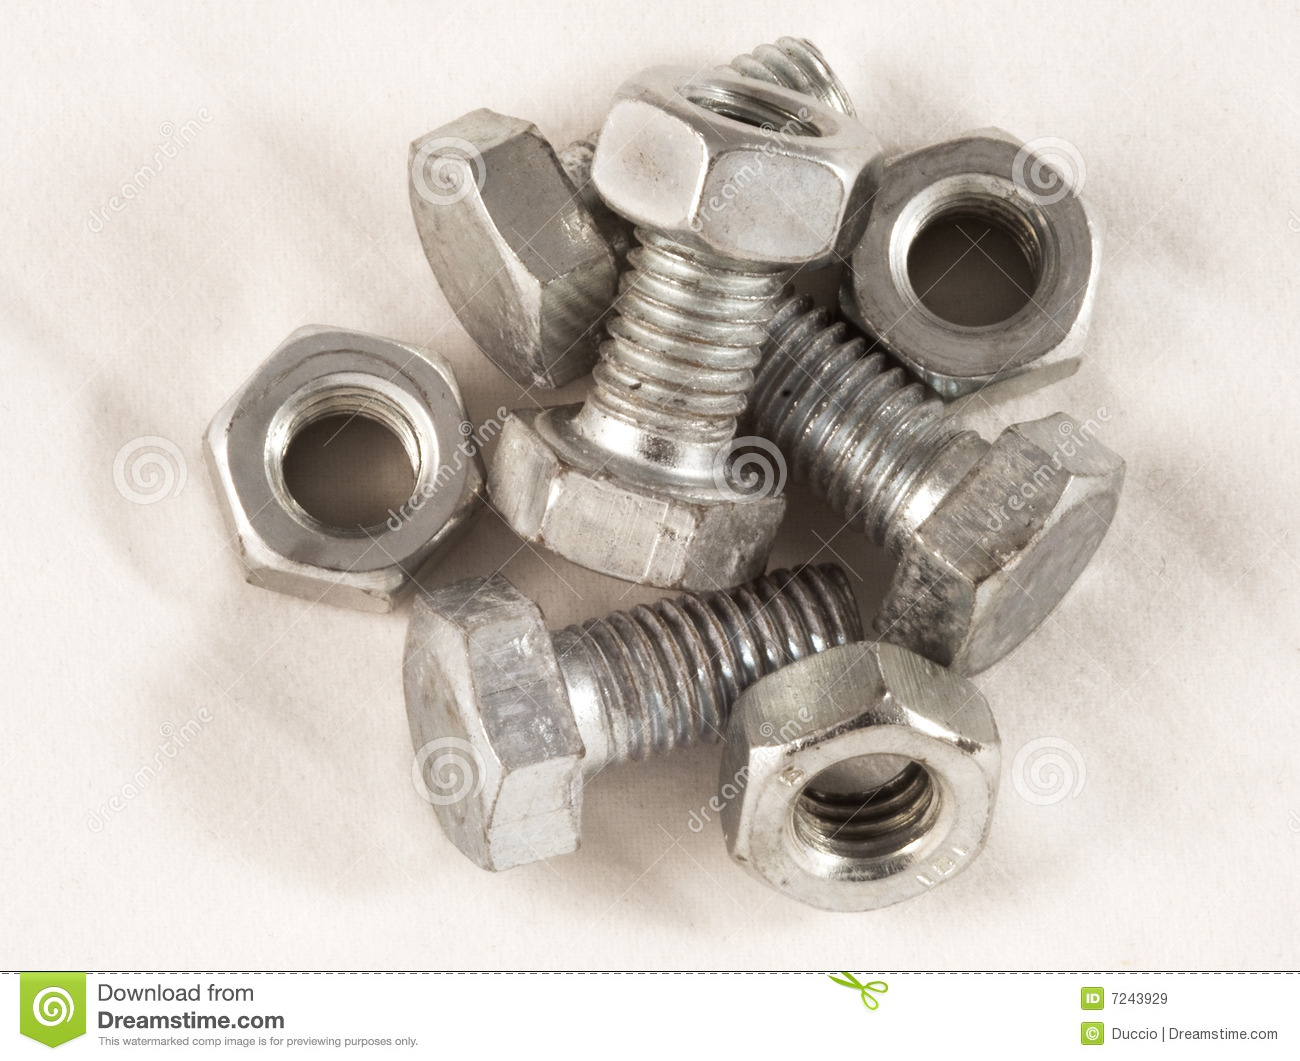 Nuts and bolts stock image  Image of hardware, open, unscrew